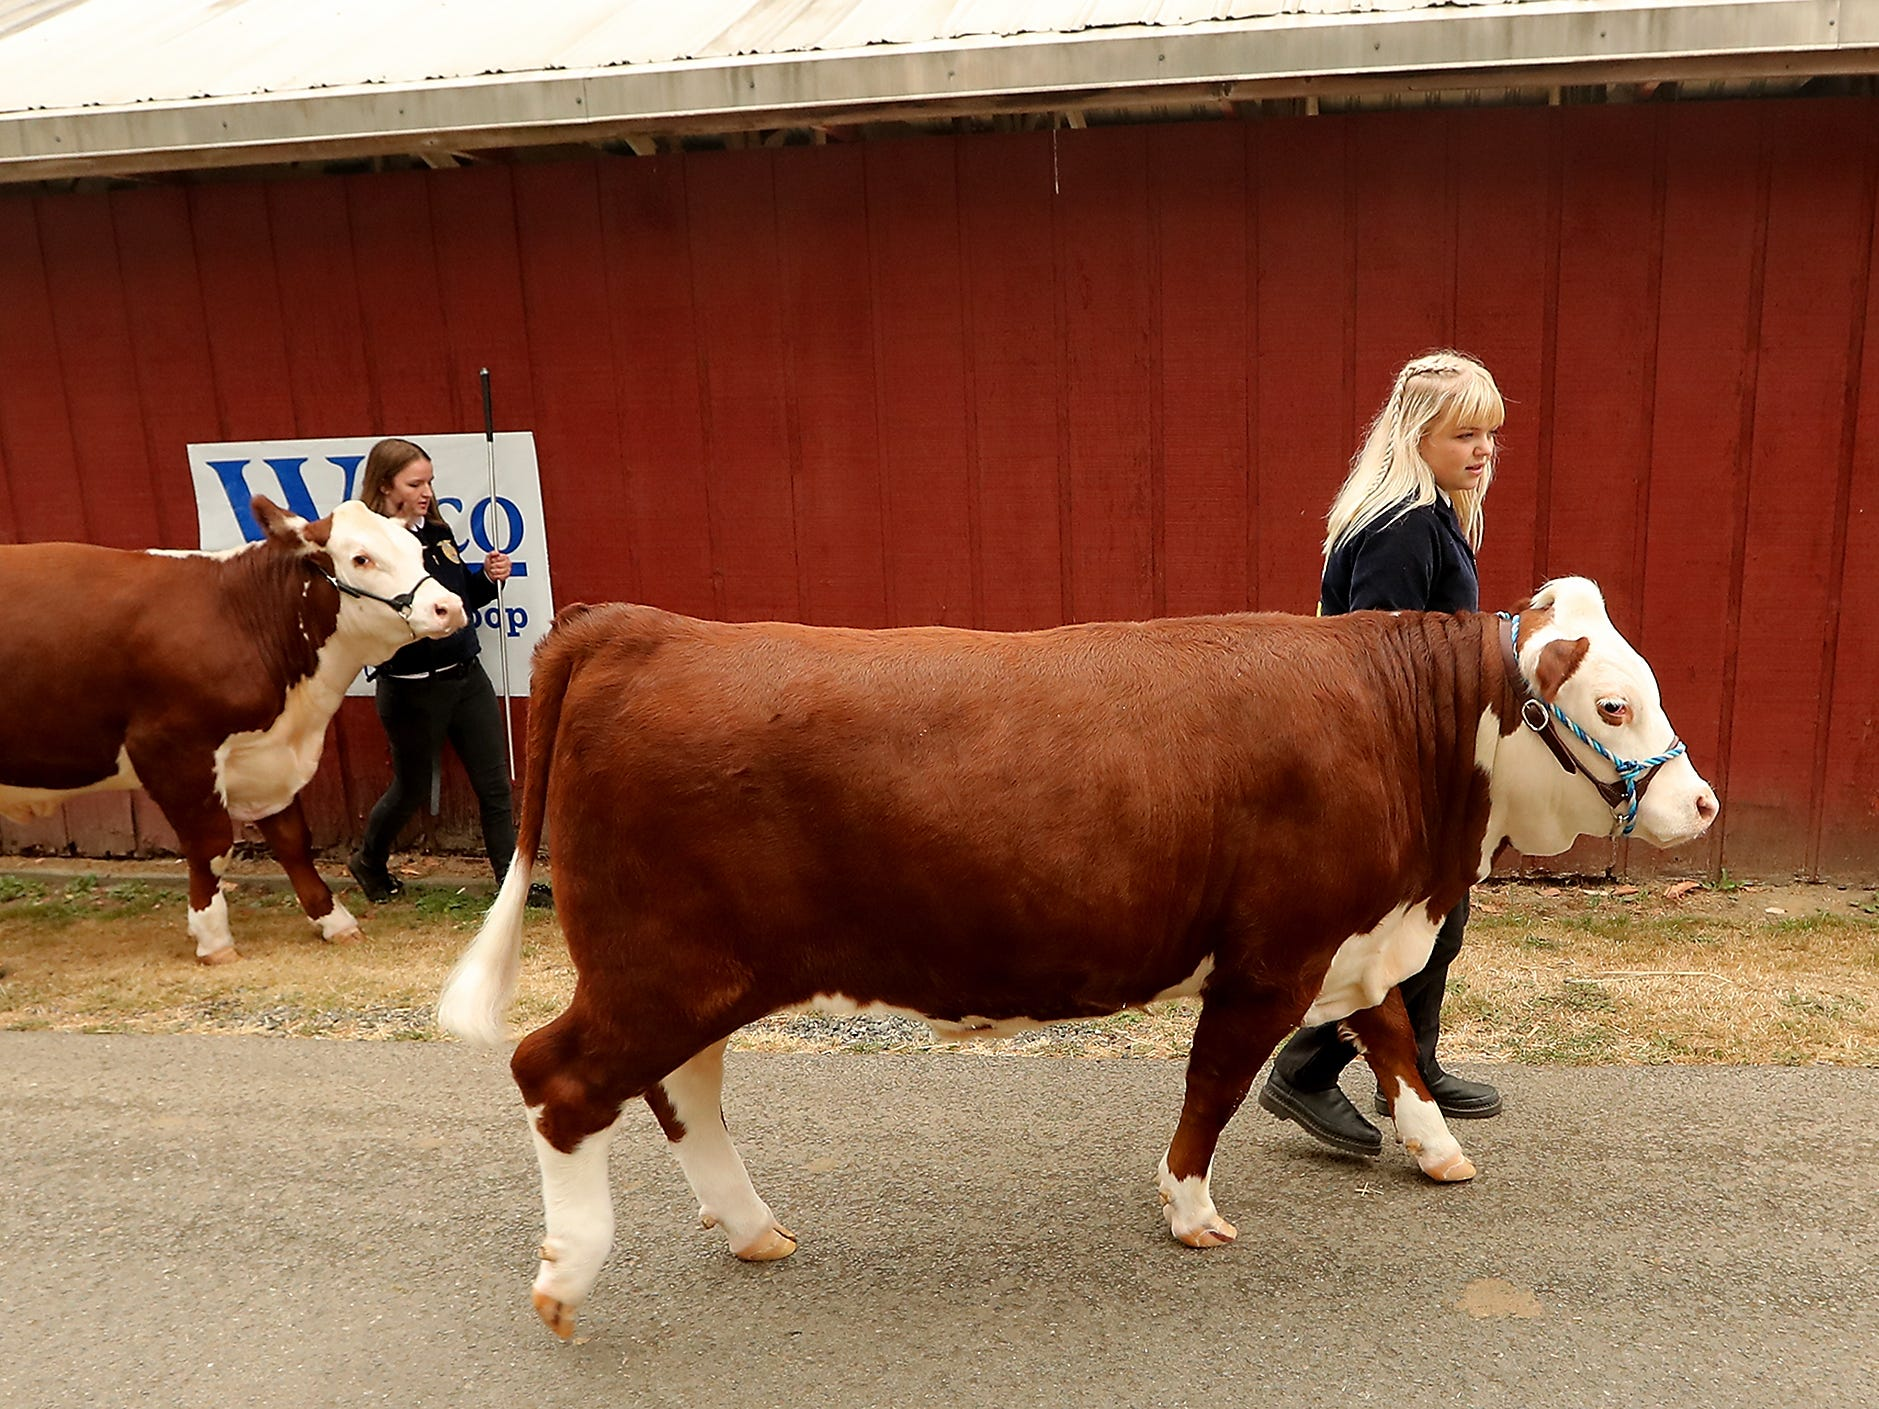 South Kitsap FFA members (left to right) AJ Shipp with steer Tucker and Chelsea Hughson with steer Champ walk back tot he barn after the livestock auction at the Kitsap County Fair & Stampede on Saturday, August 25. 2018.